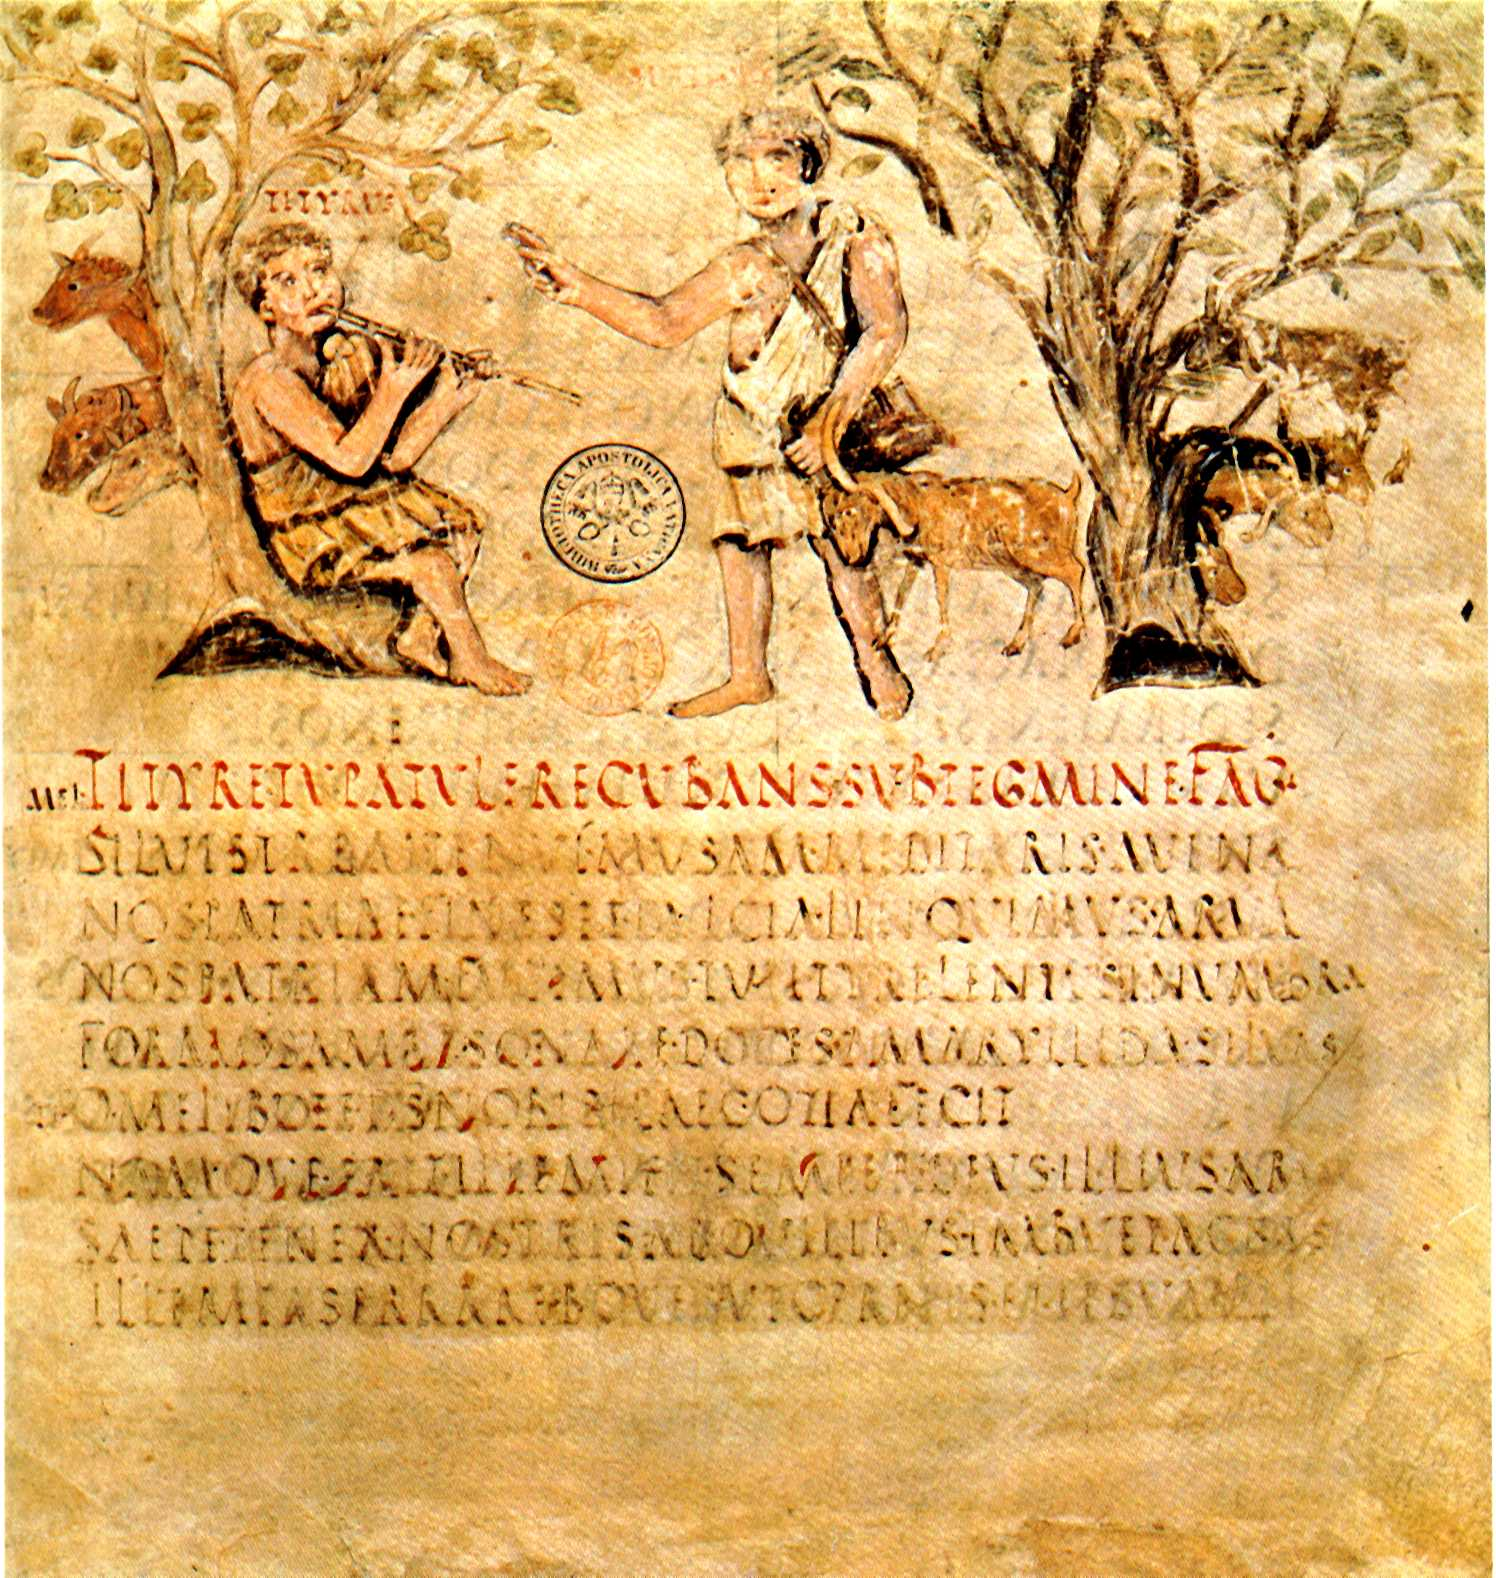 First lines of  Eclogues,  or  Bucolica,  from  Vergilius Romanus  - an illustrated manuscript from the 5th century. Biblioteca Apostolica, Cod. Vat. lat. 3867.